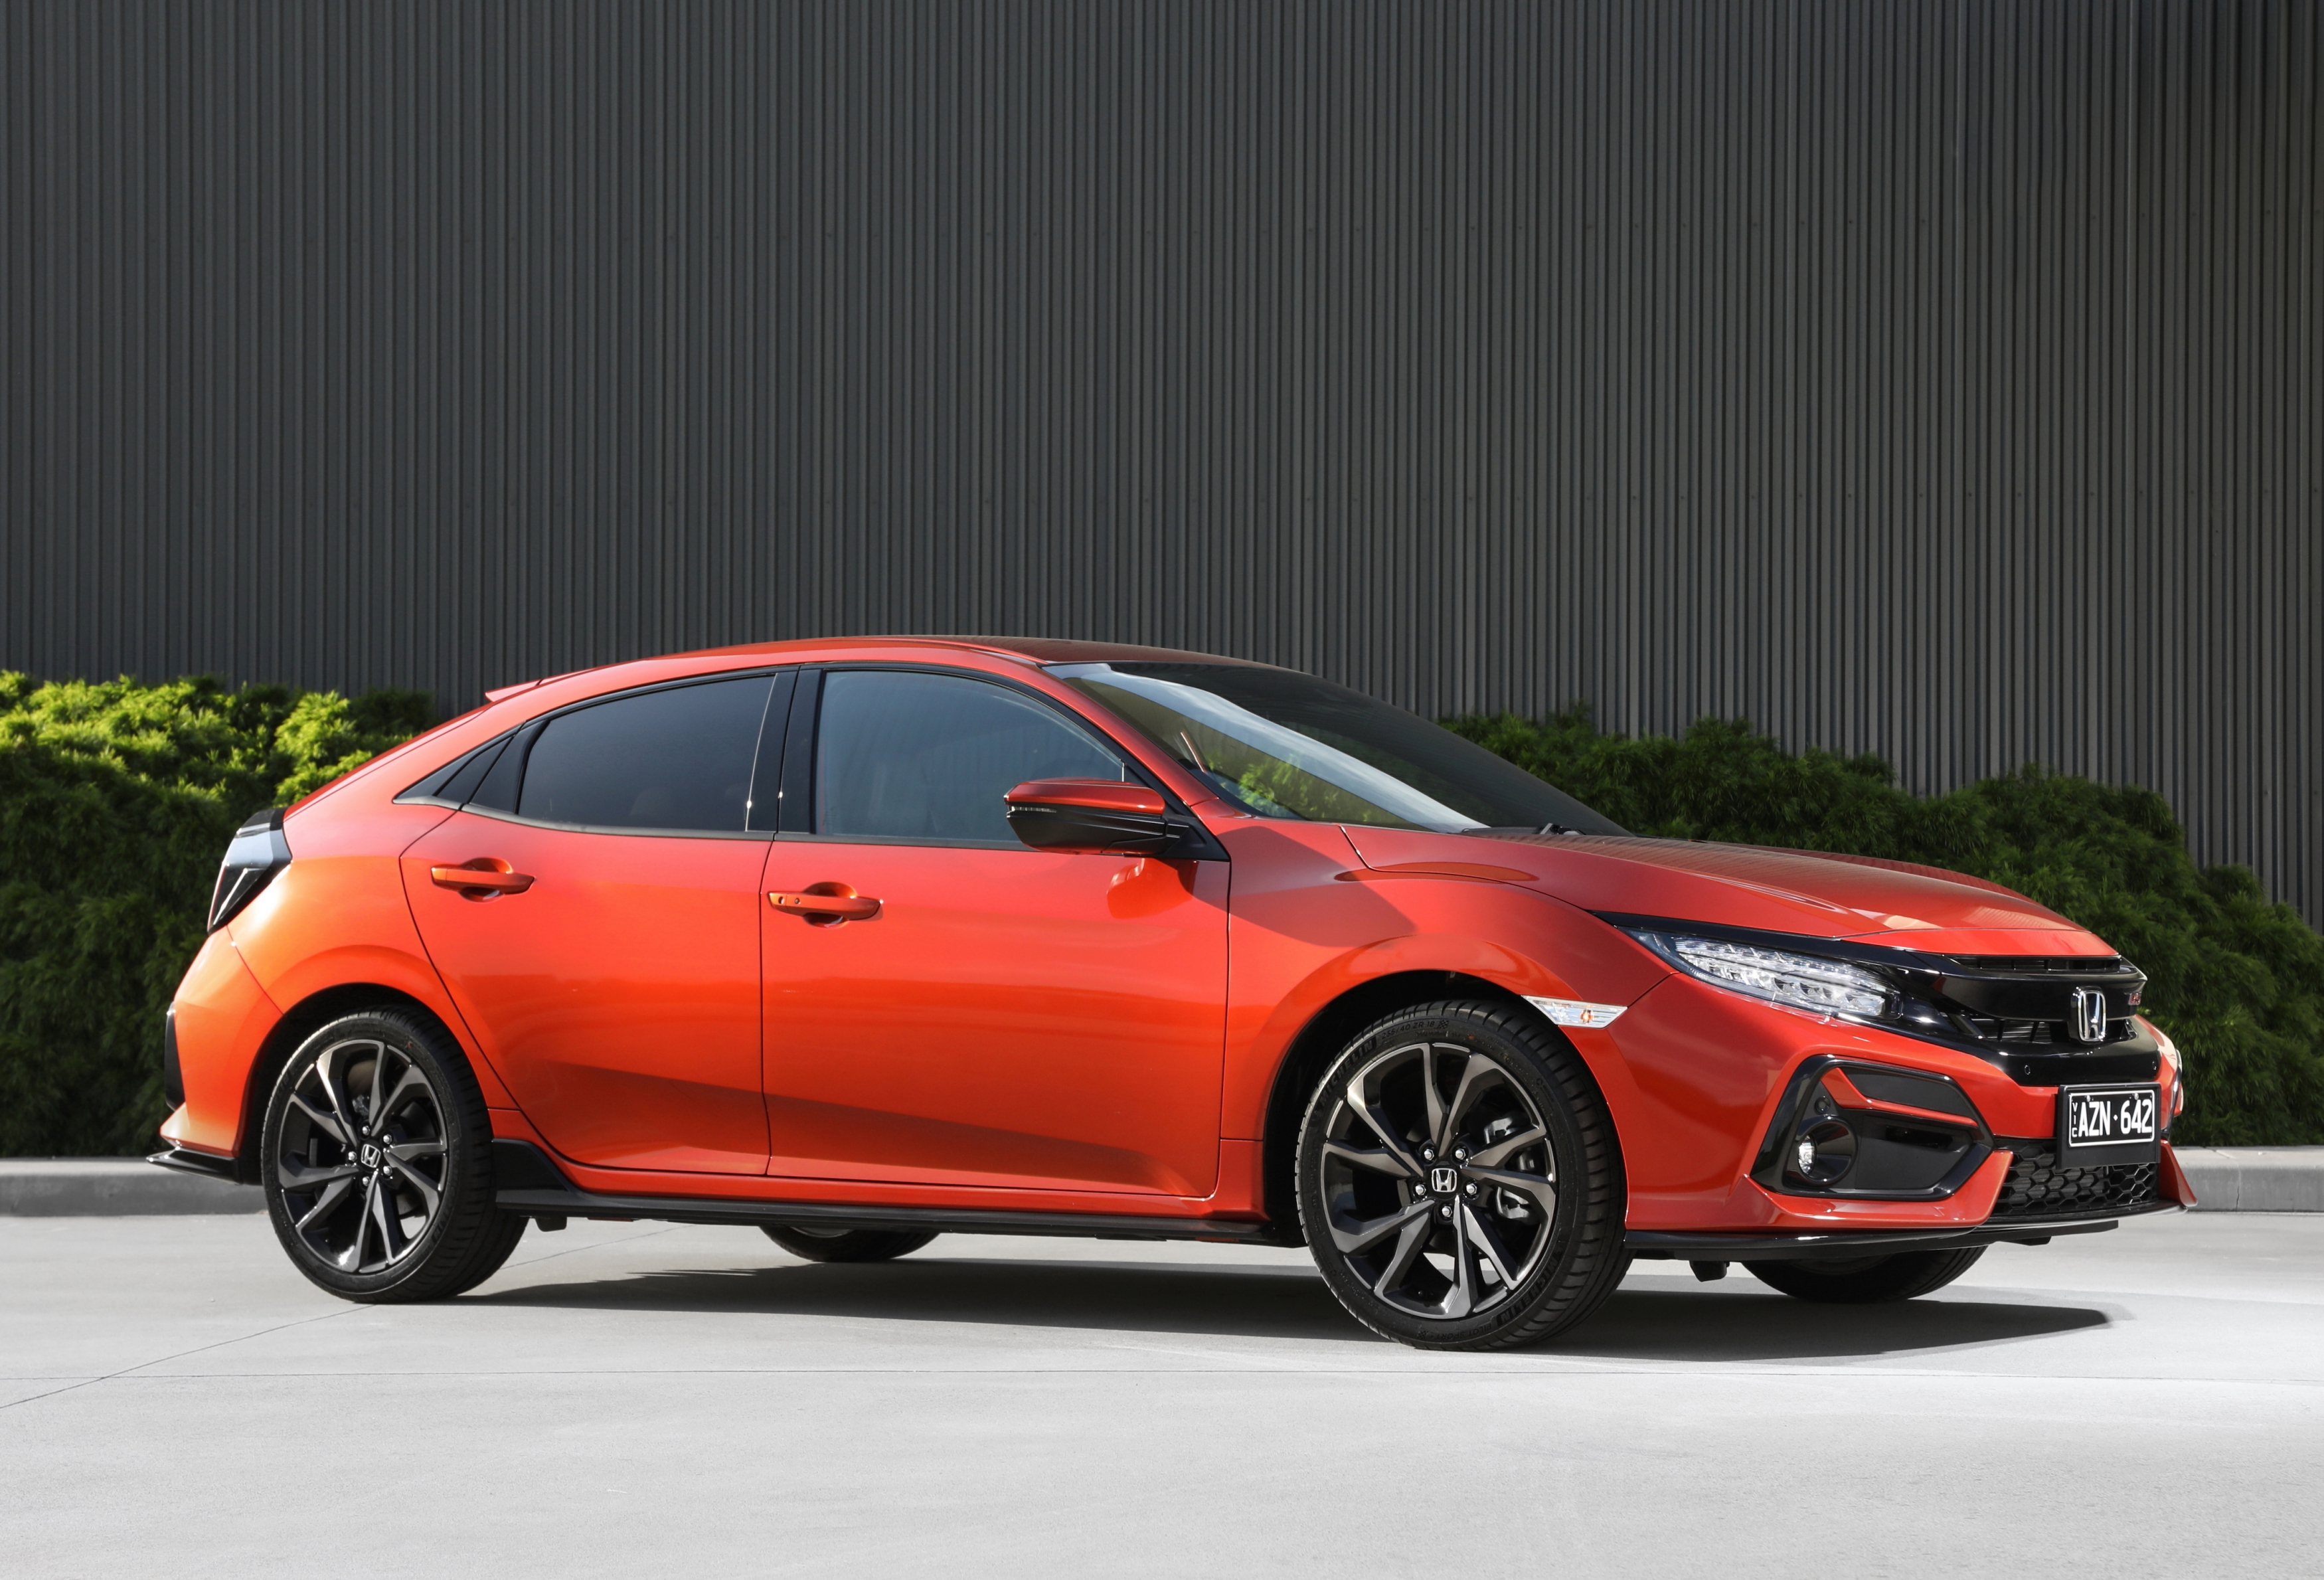 The five-door Honda Civic RS hatch – subtle sports performance with a suite of new safety features